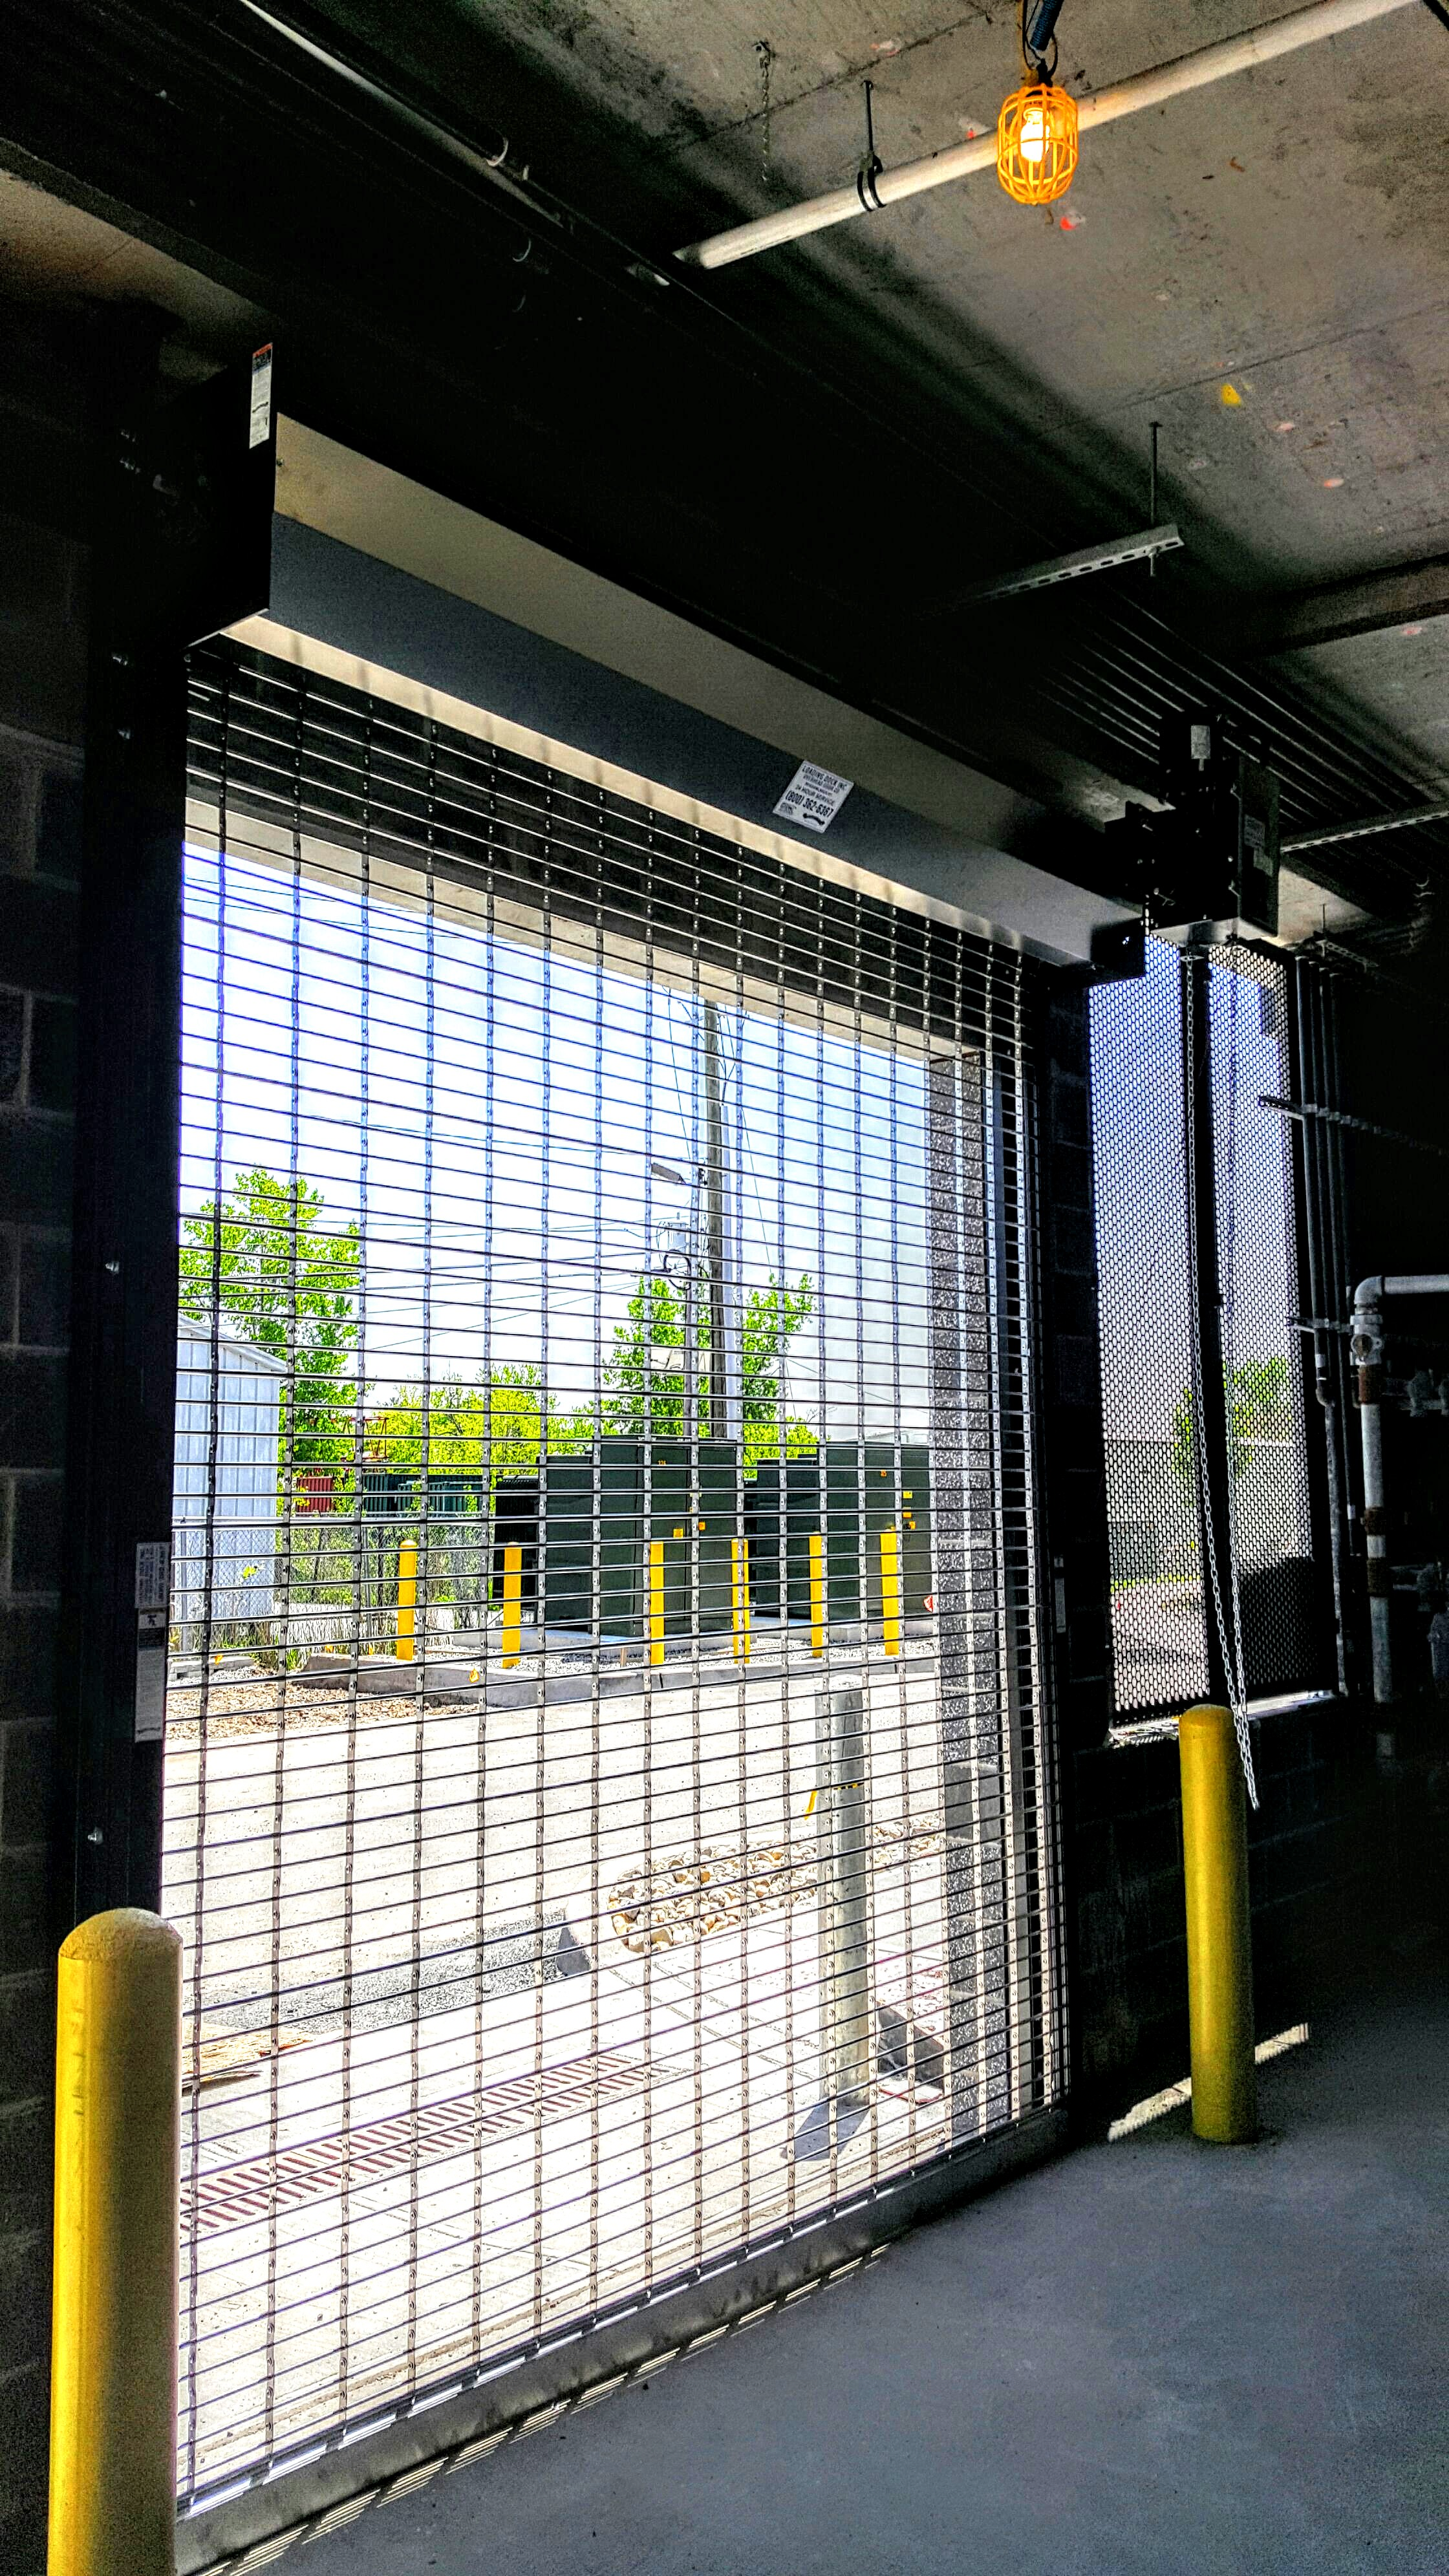 security-grille-ny-nj-gate.jpg